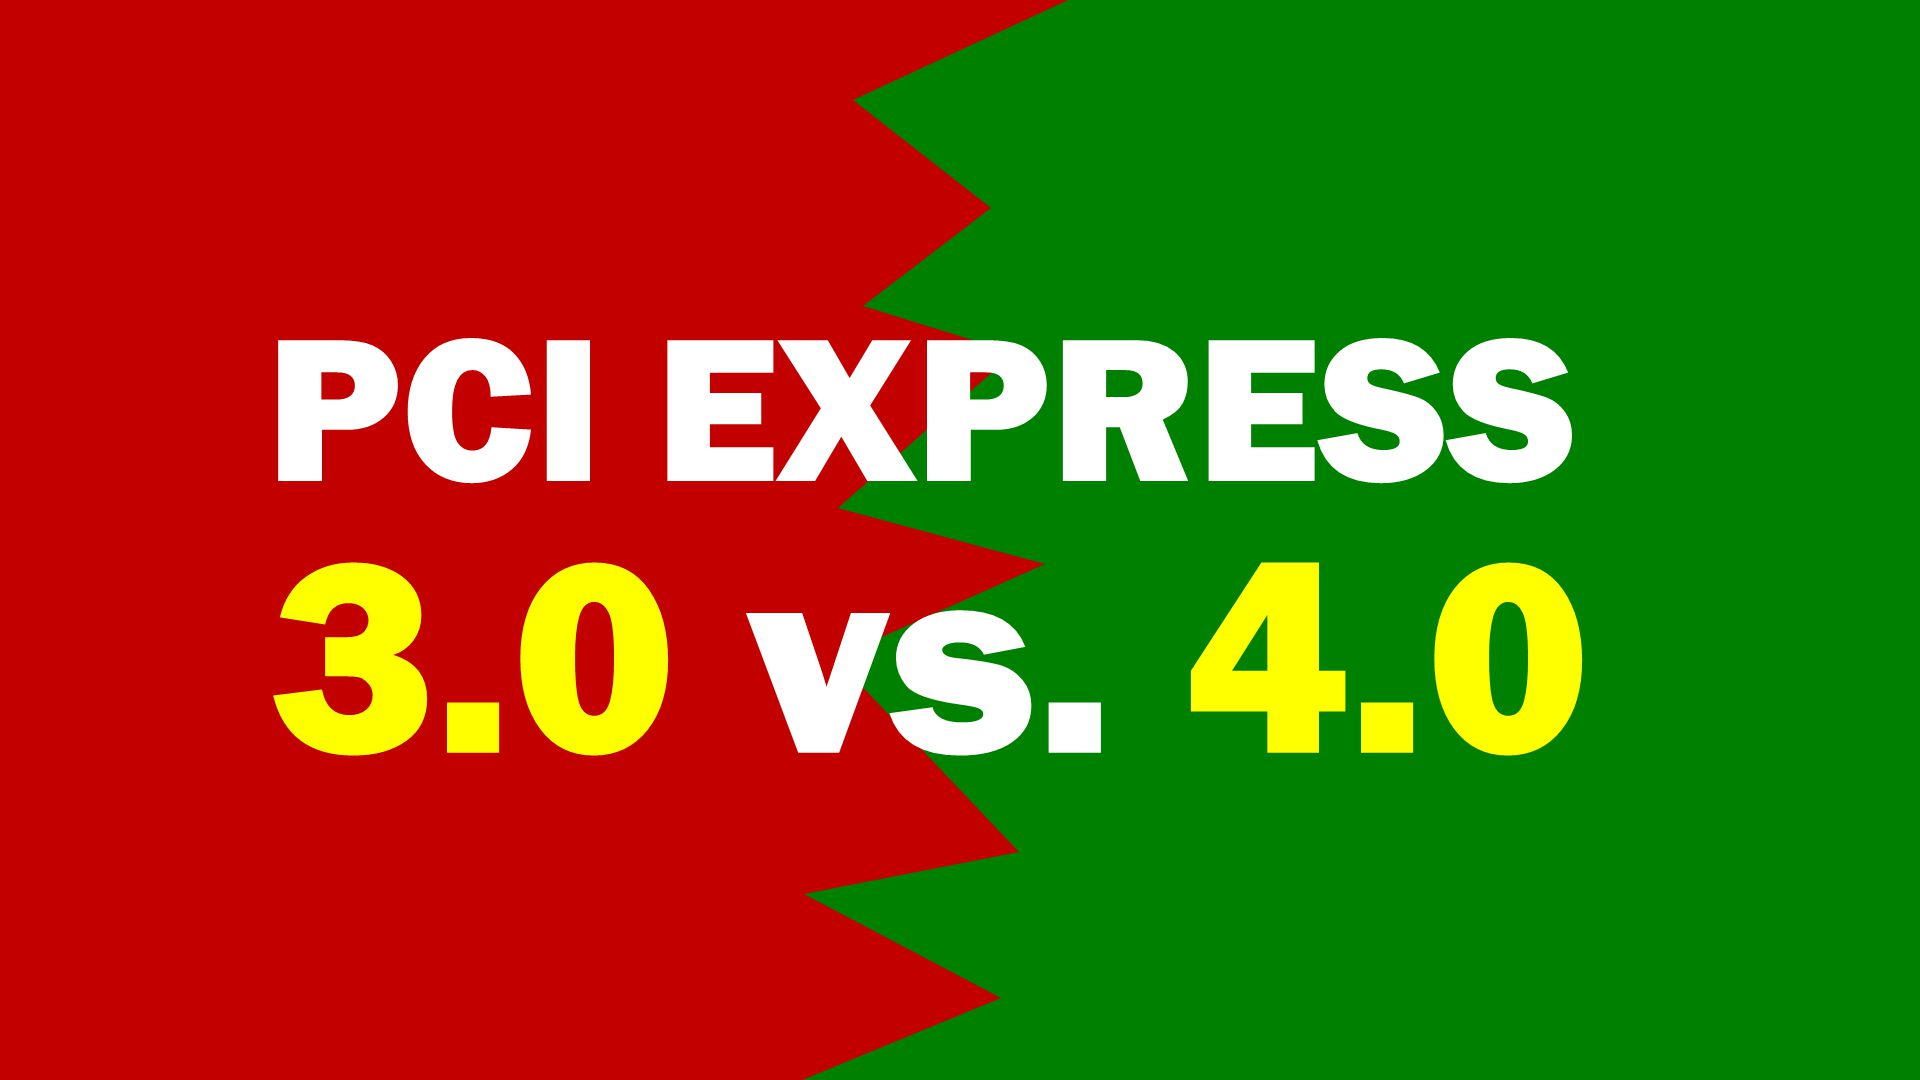 PCI-Express 4.0 vs. 3.0 in test - advantage or tie? Real workloads provide Aha-moments every now and then! | practical test